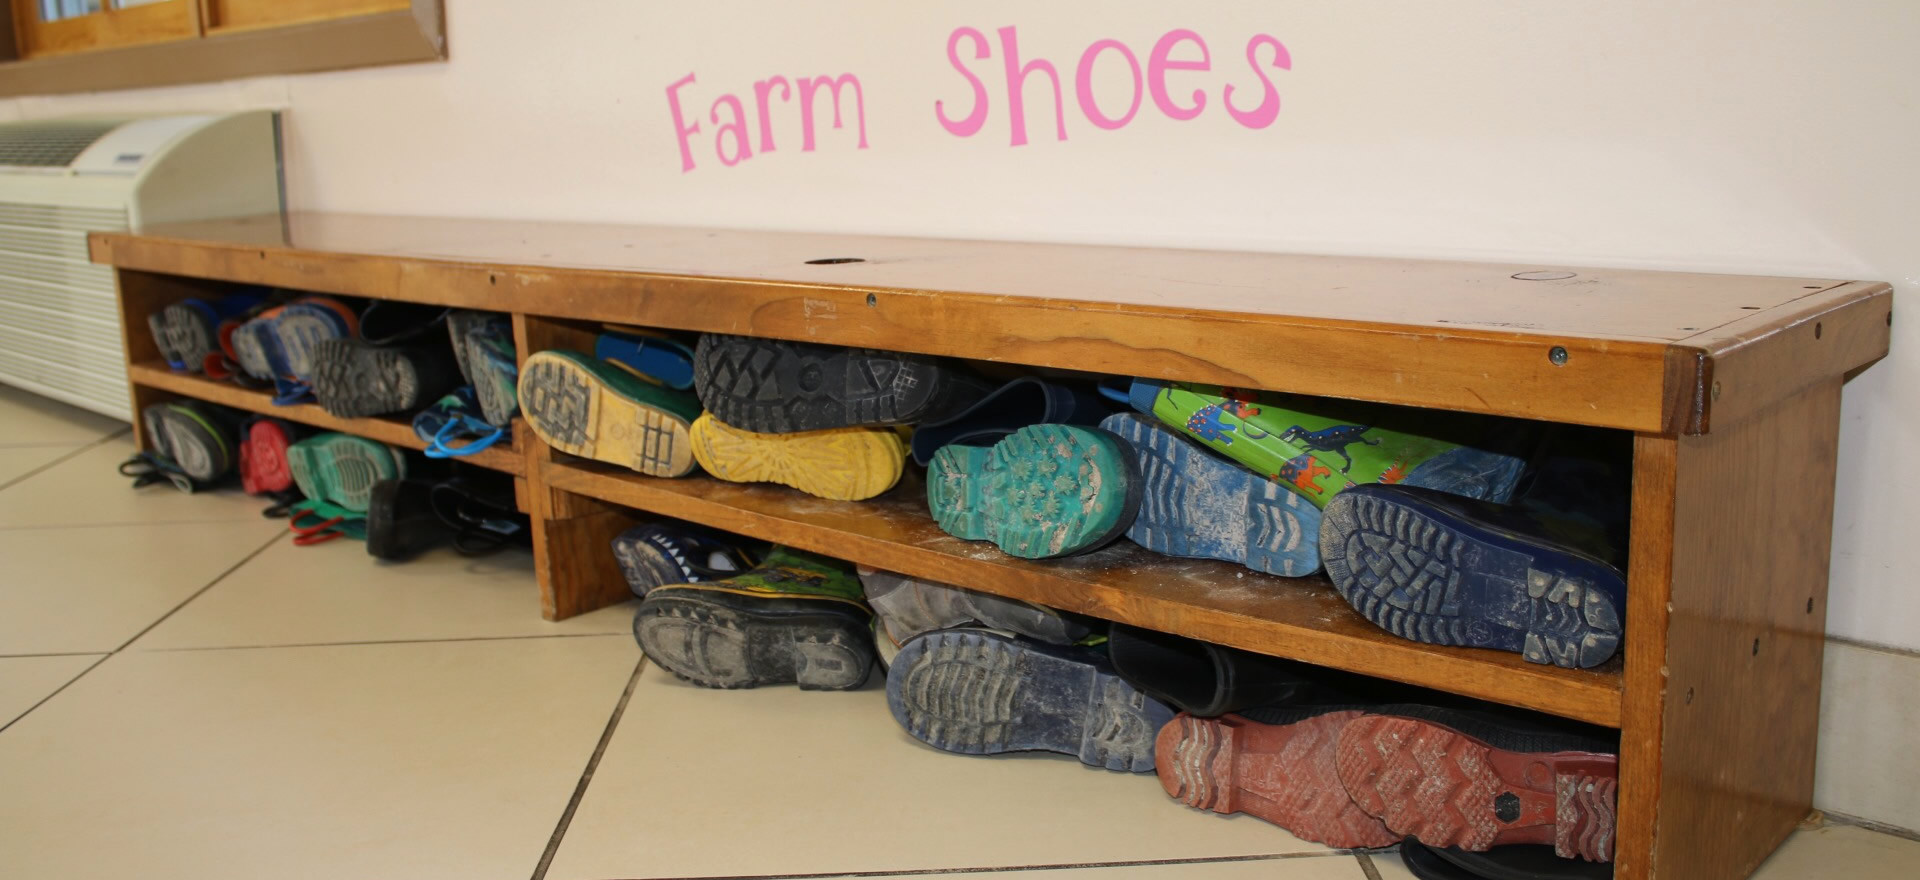 Farm shoes